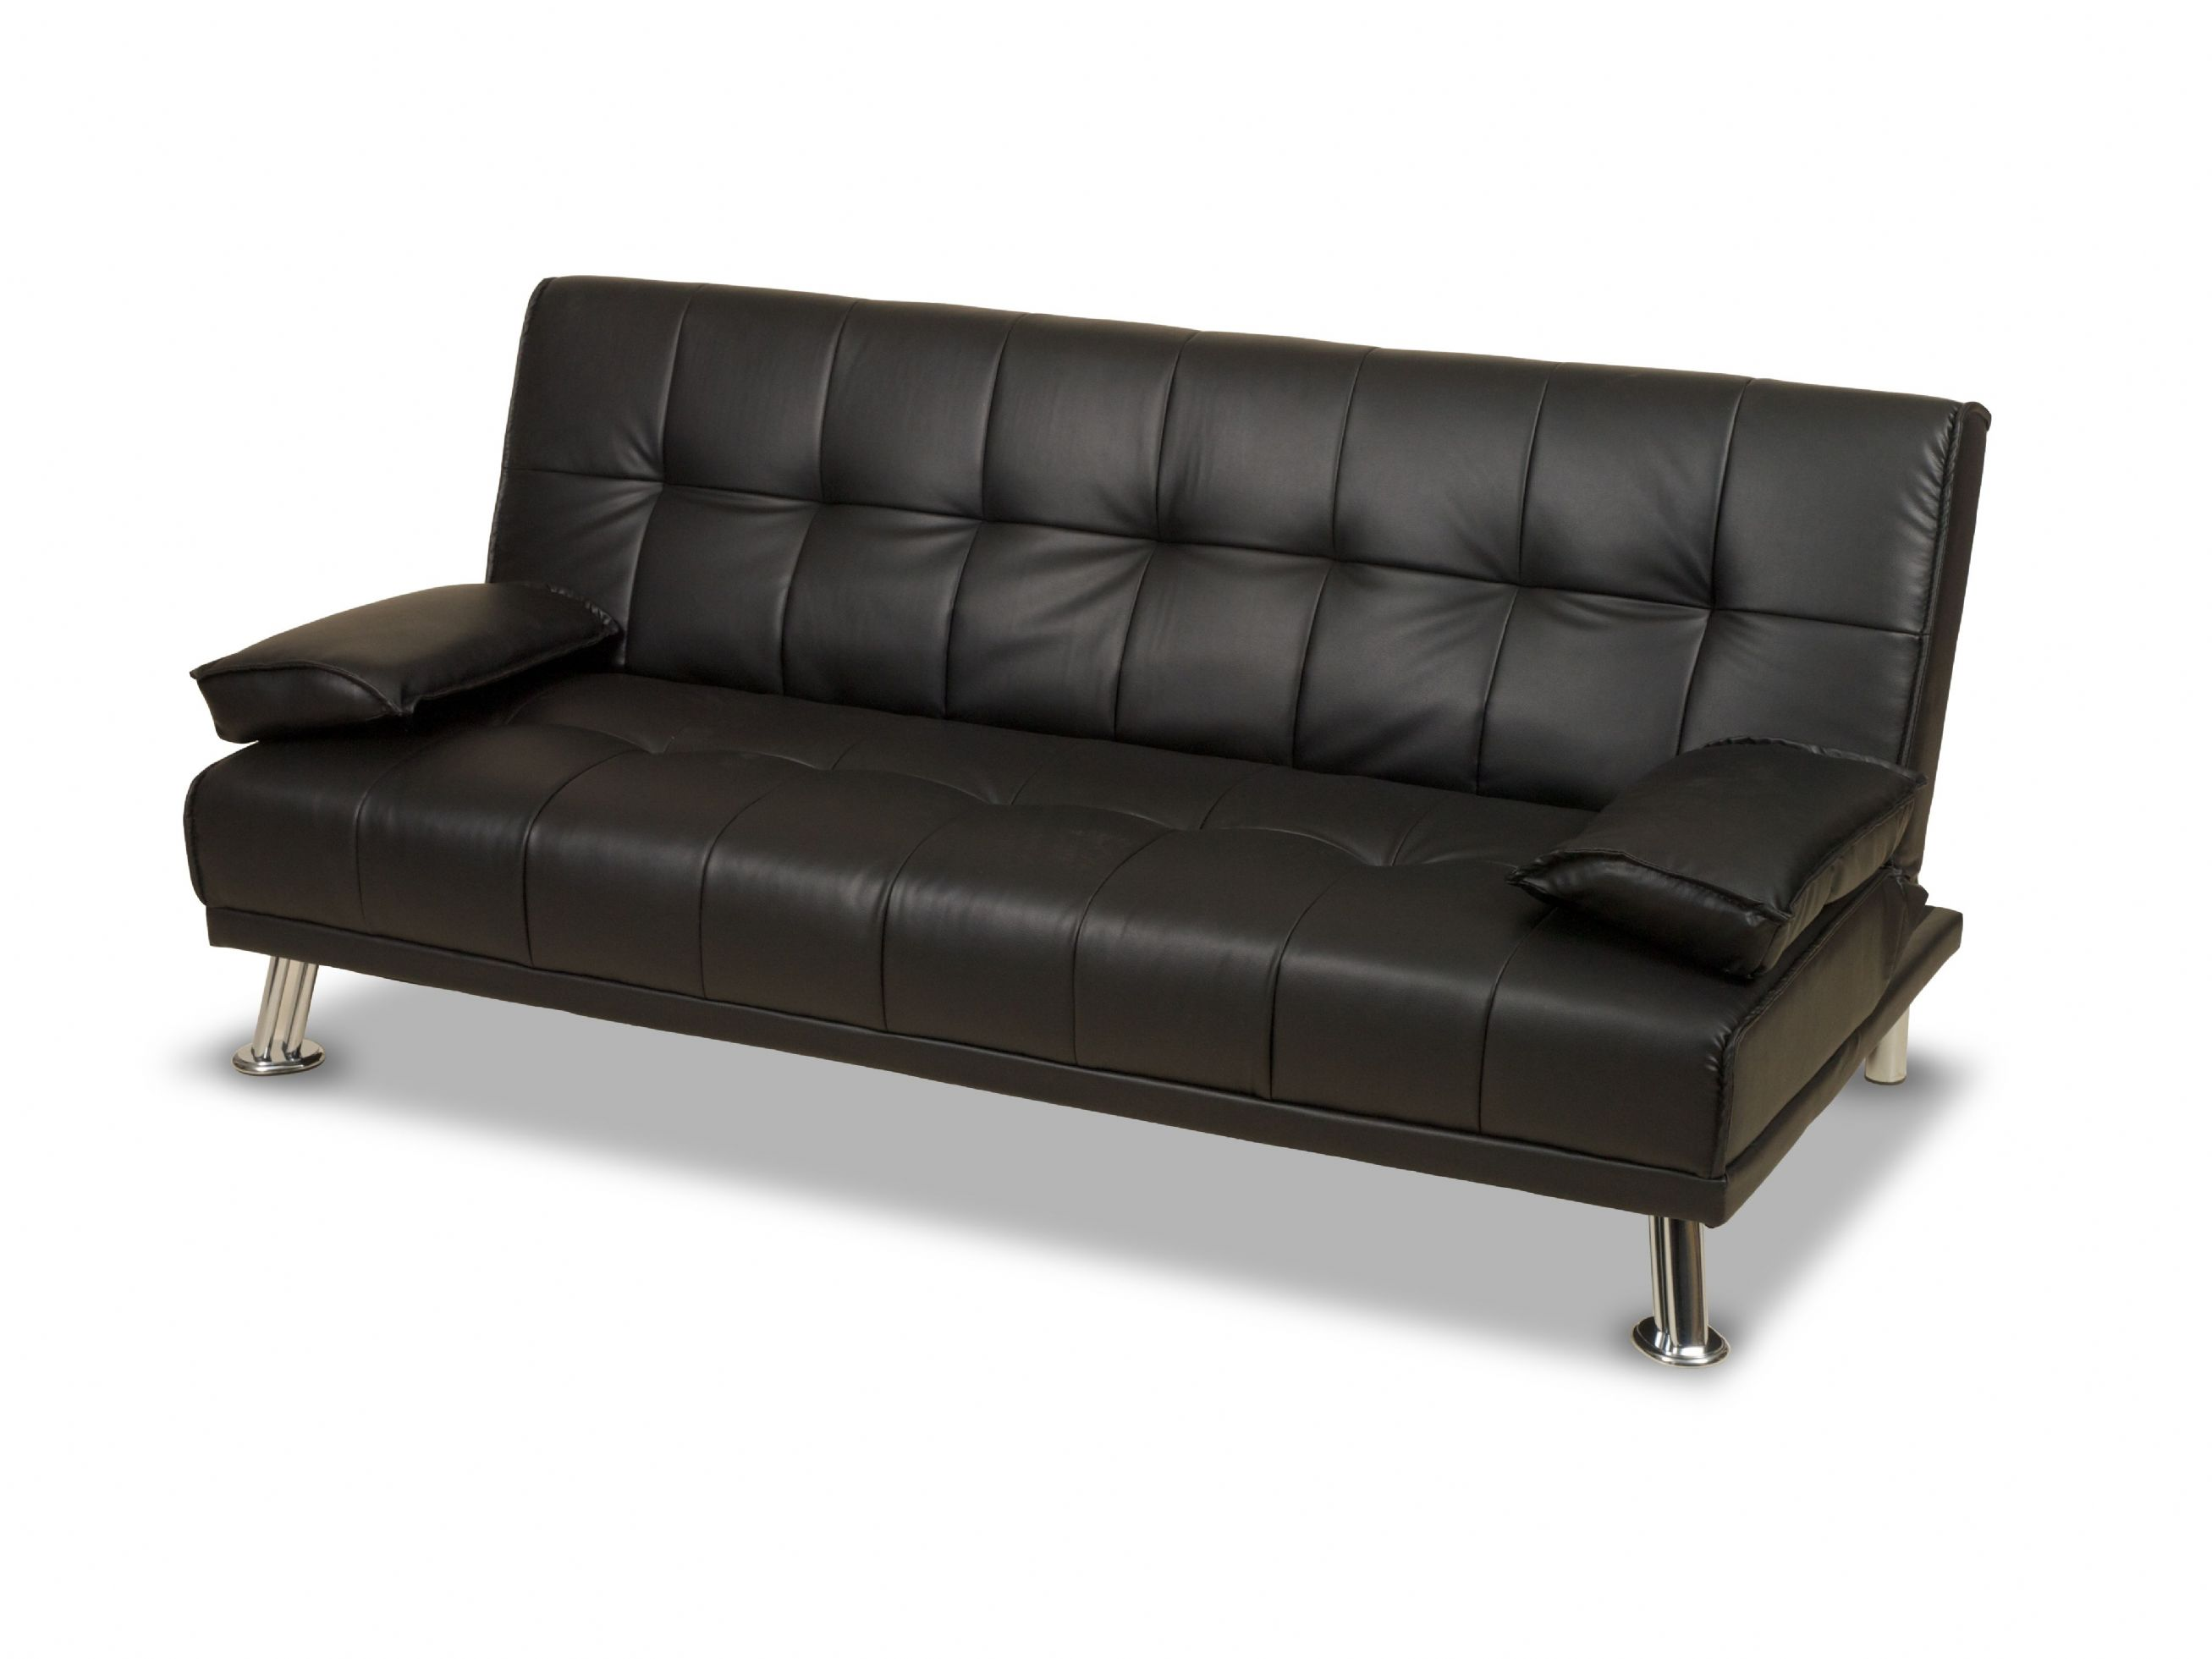 Venice Sofa Bed In Faux Leather